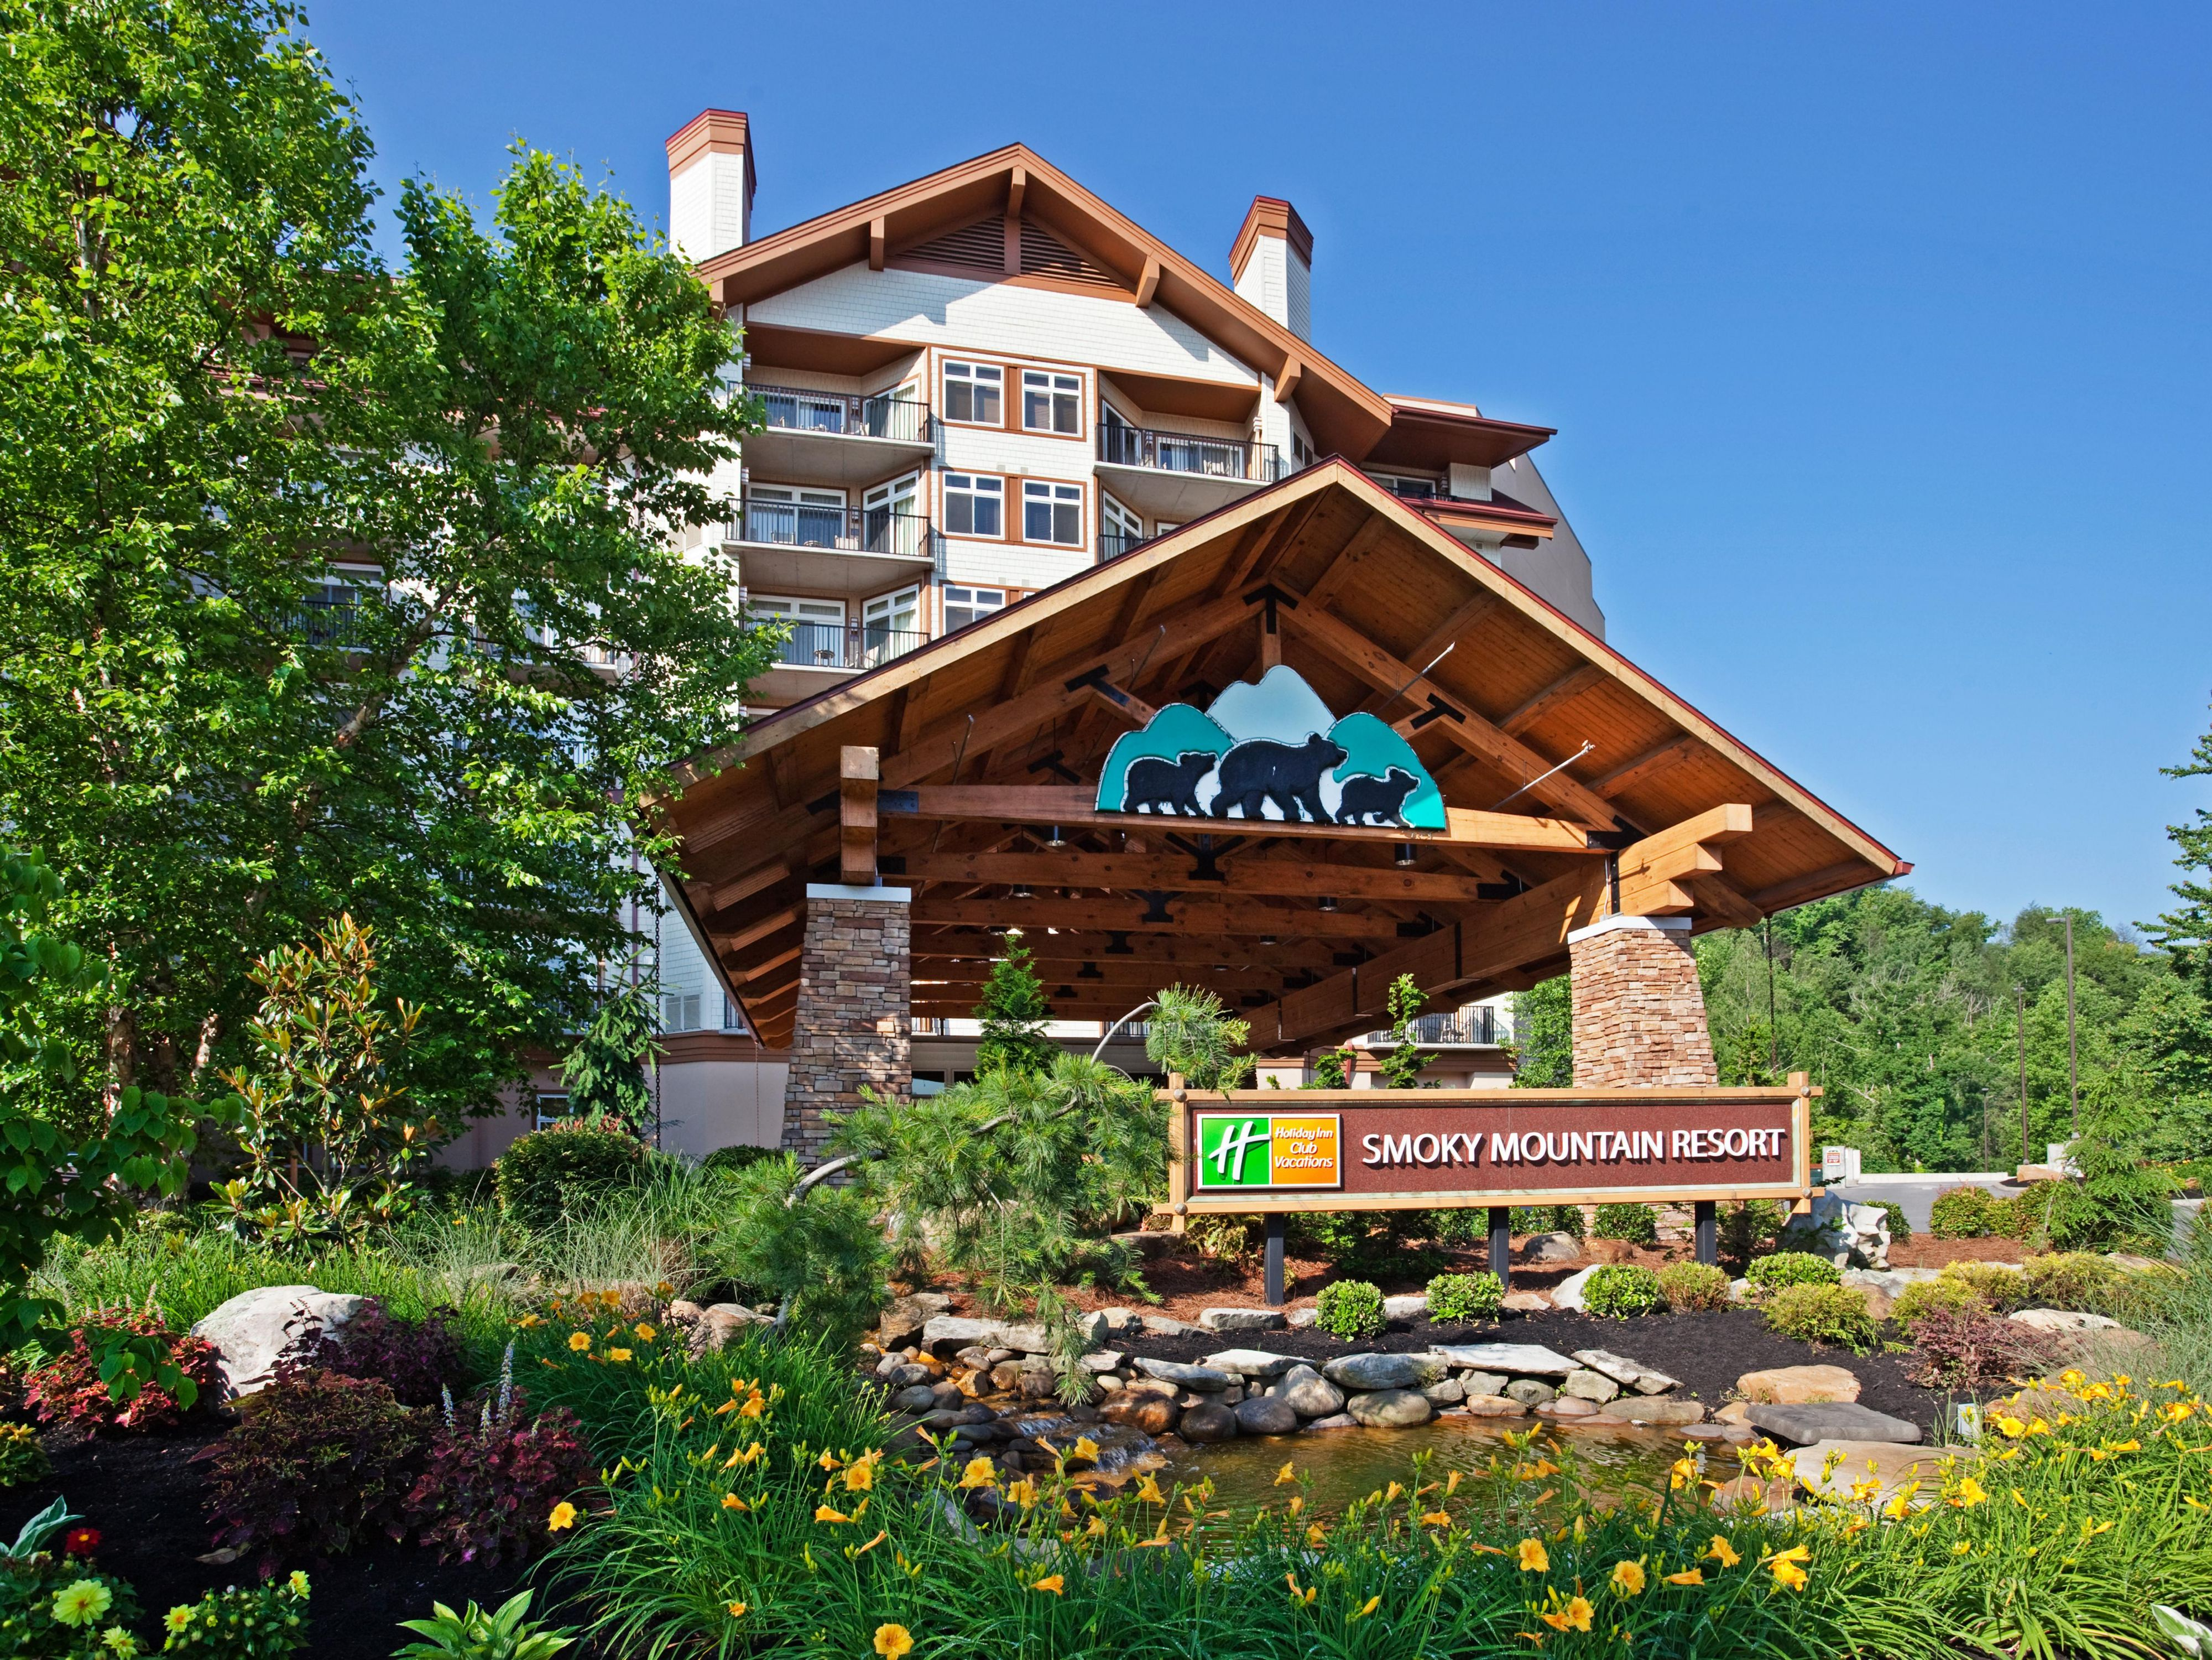 Holiday Inn Club Vacations Smoky Mountain Resort Hotel by IHG